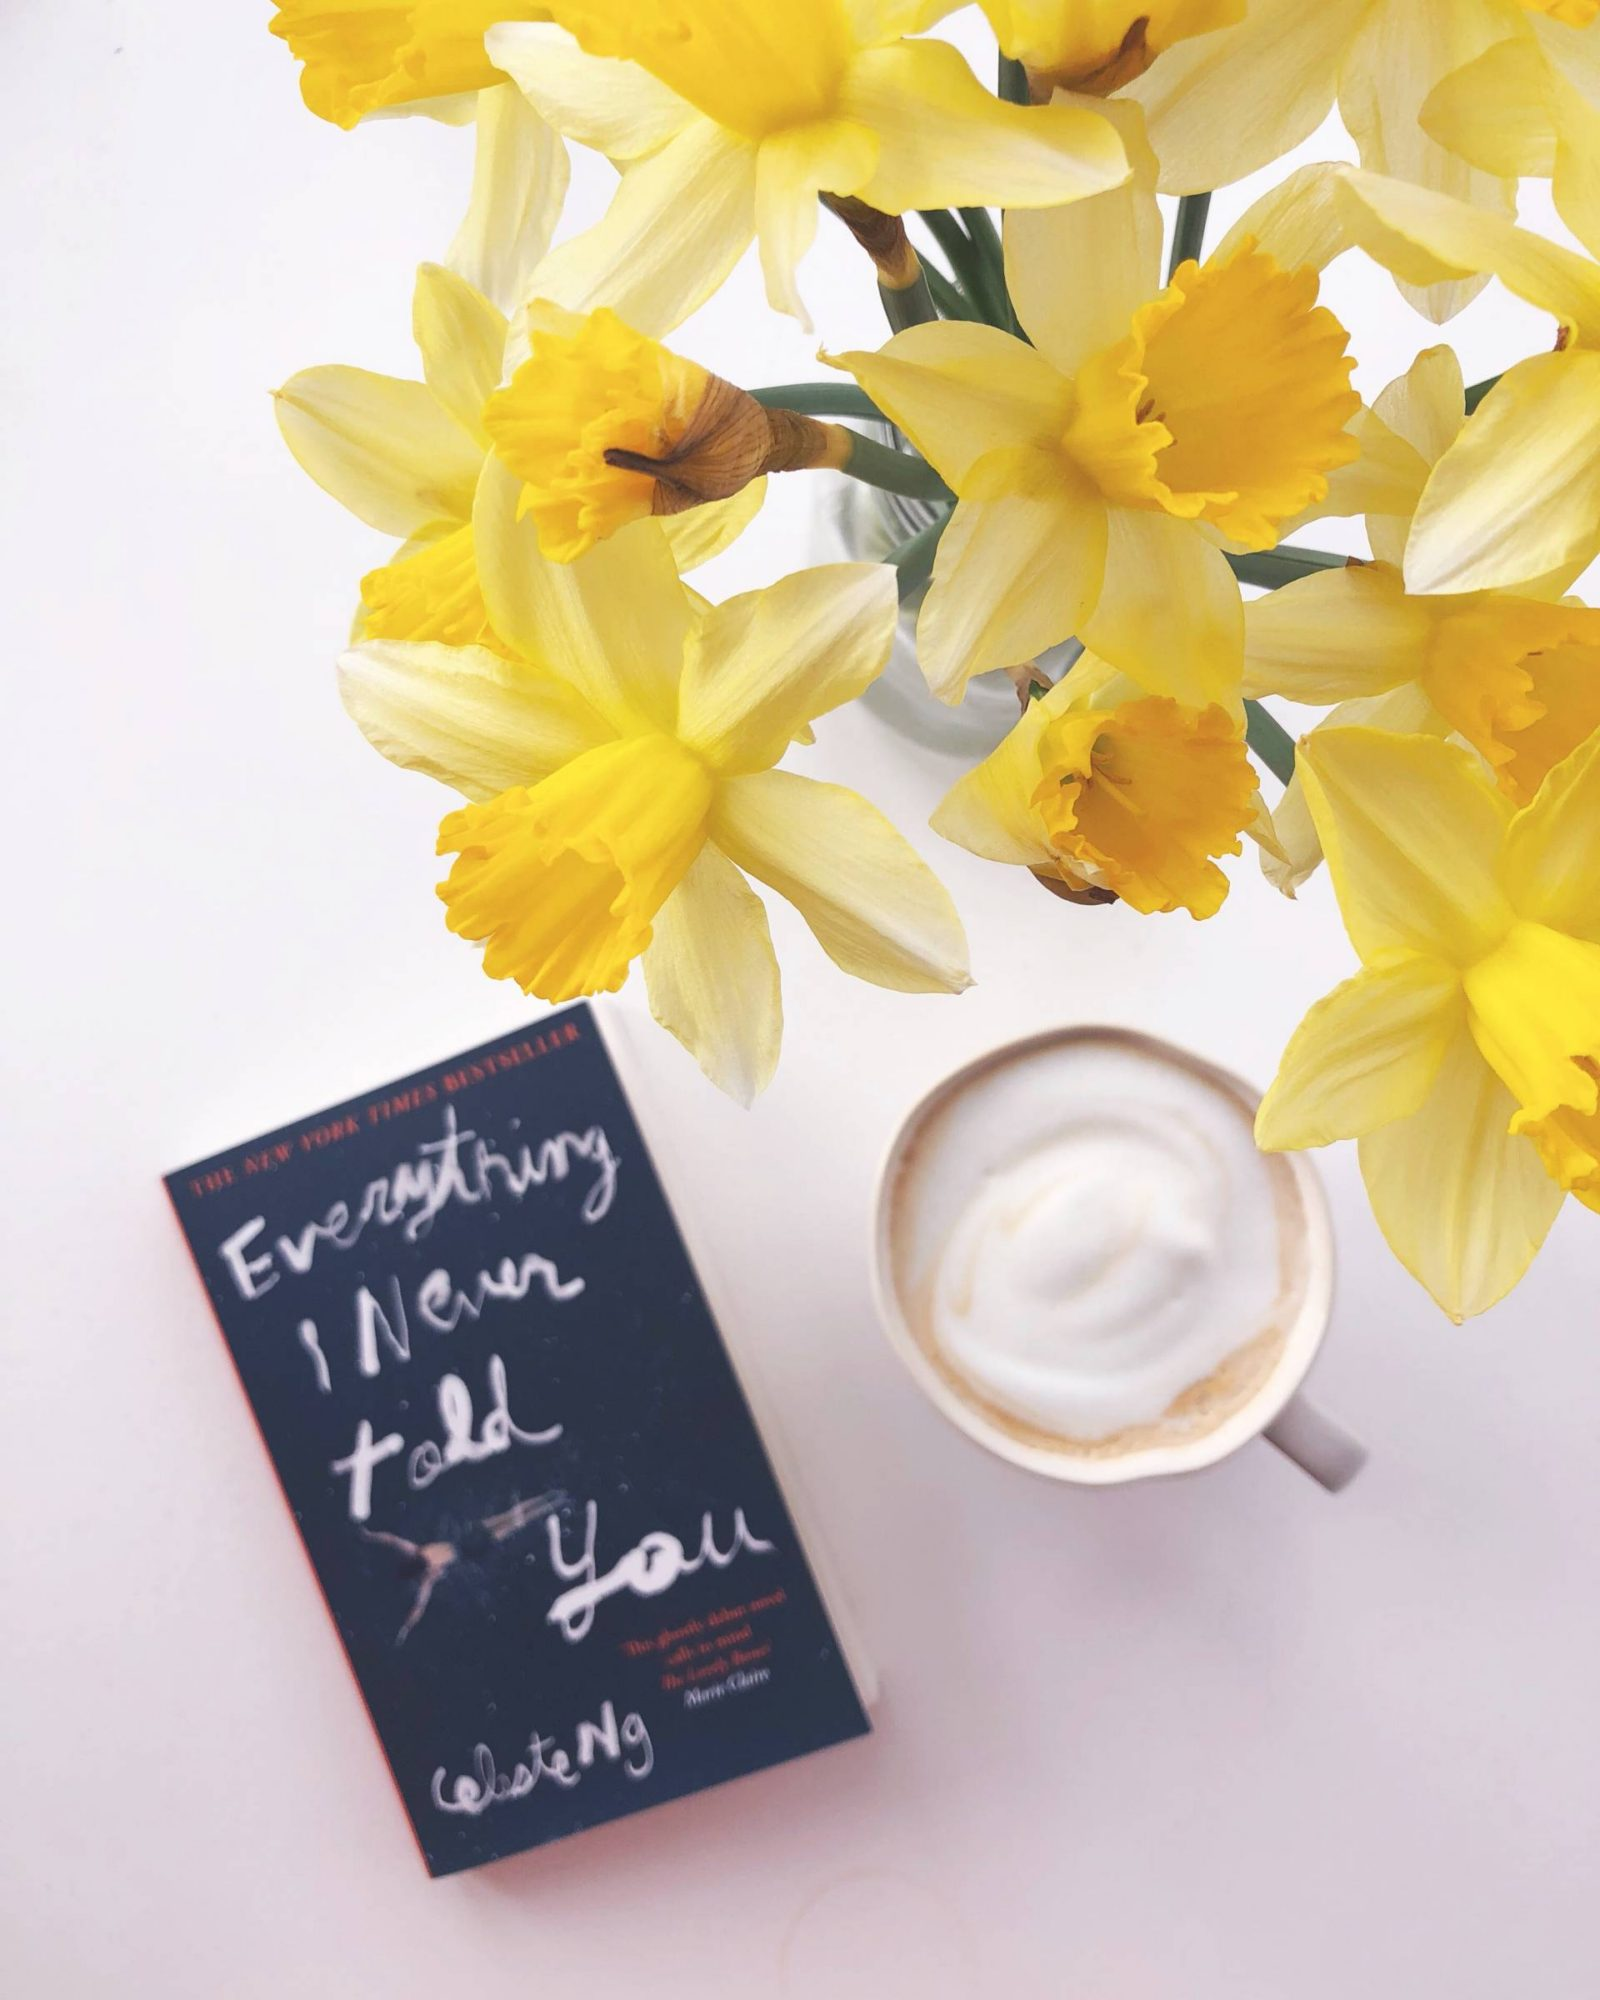 Getting out of hospital, daffodils and 90's music – little loves